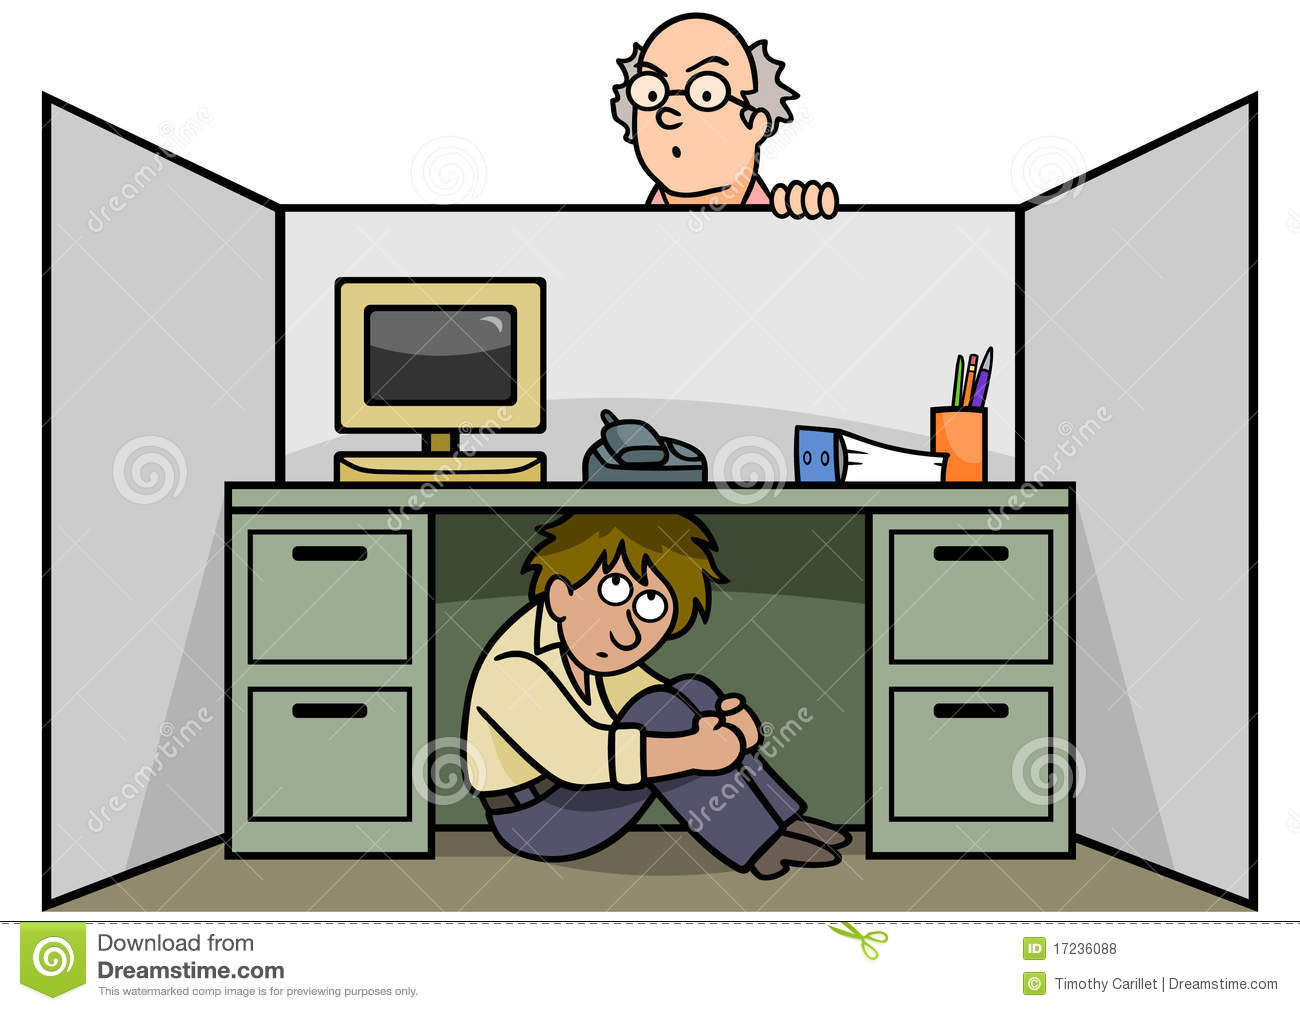 Employee hiding under his desk so the manager can't find him.